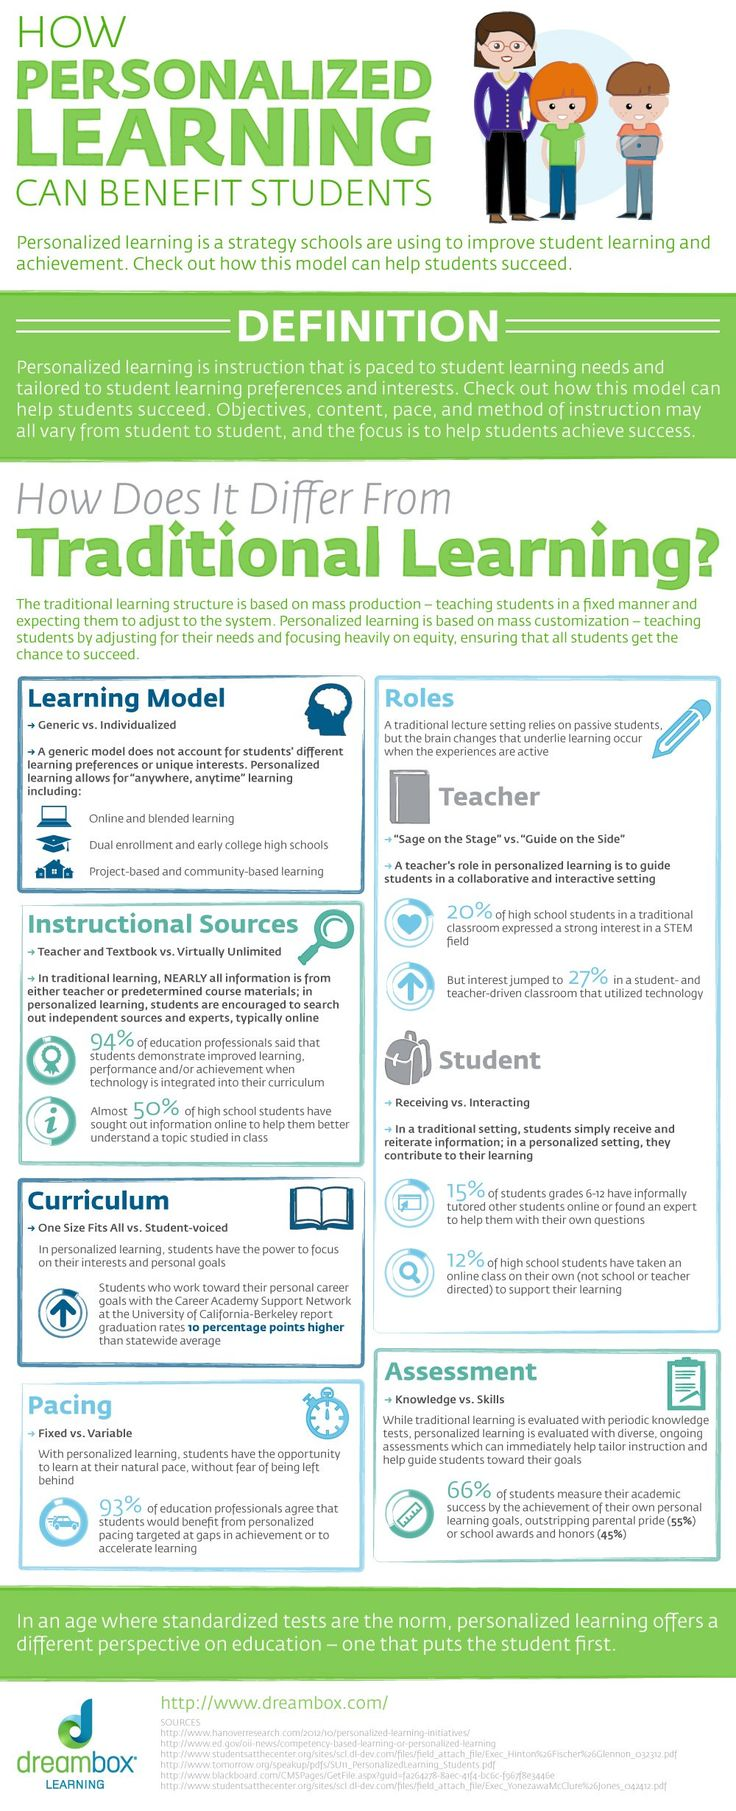 How Personalized Learning Can Benefit Students (#INFOGRAPHIC)